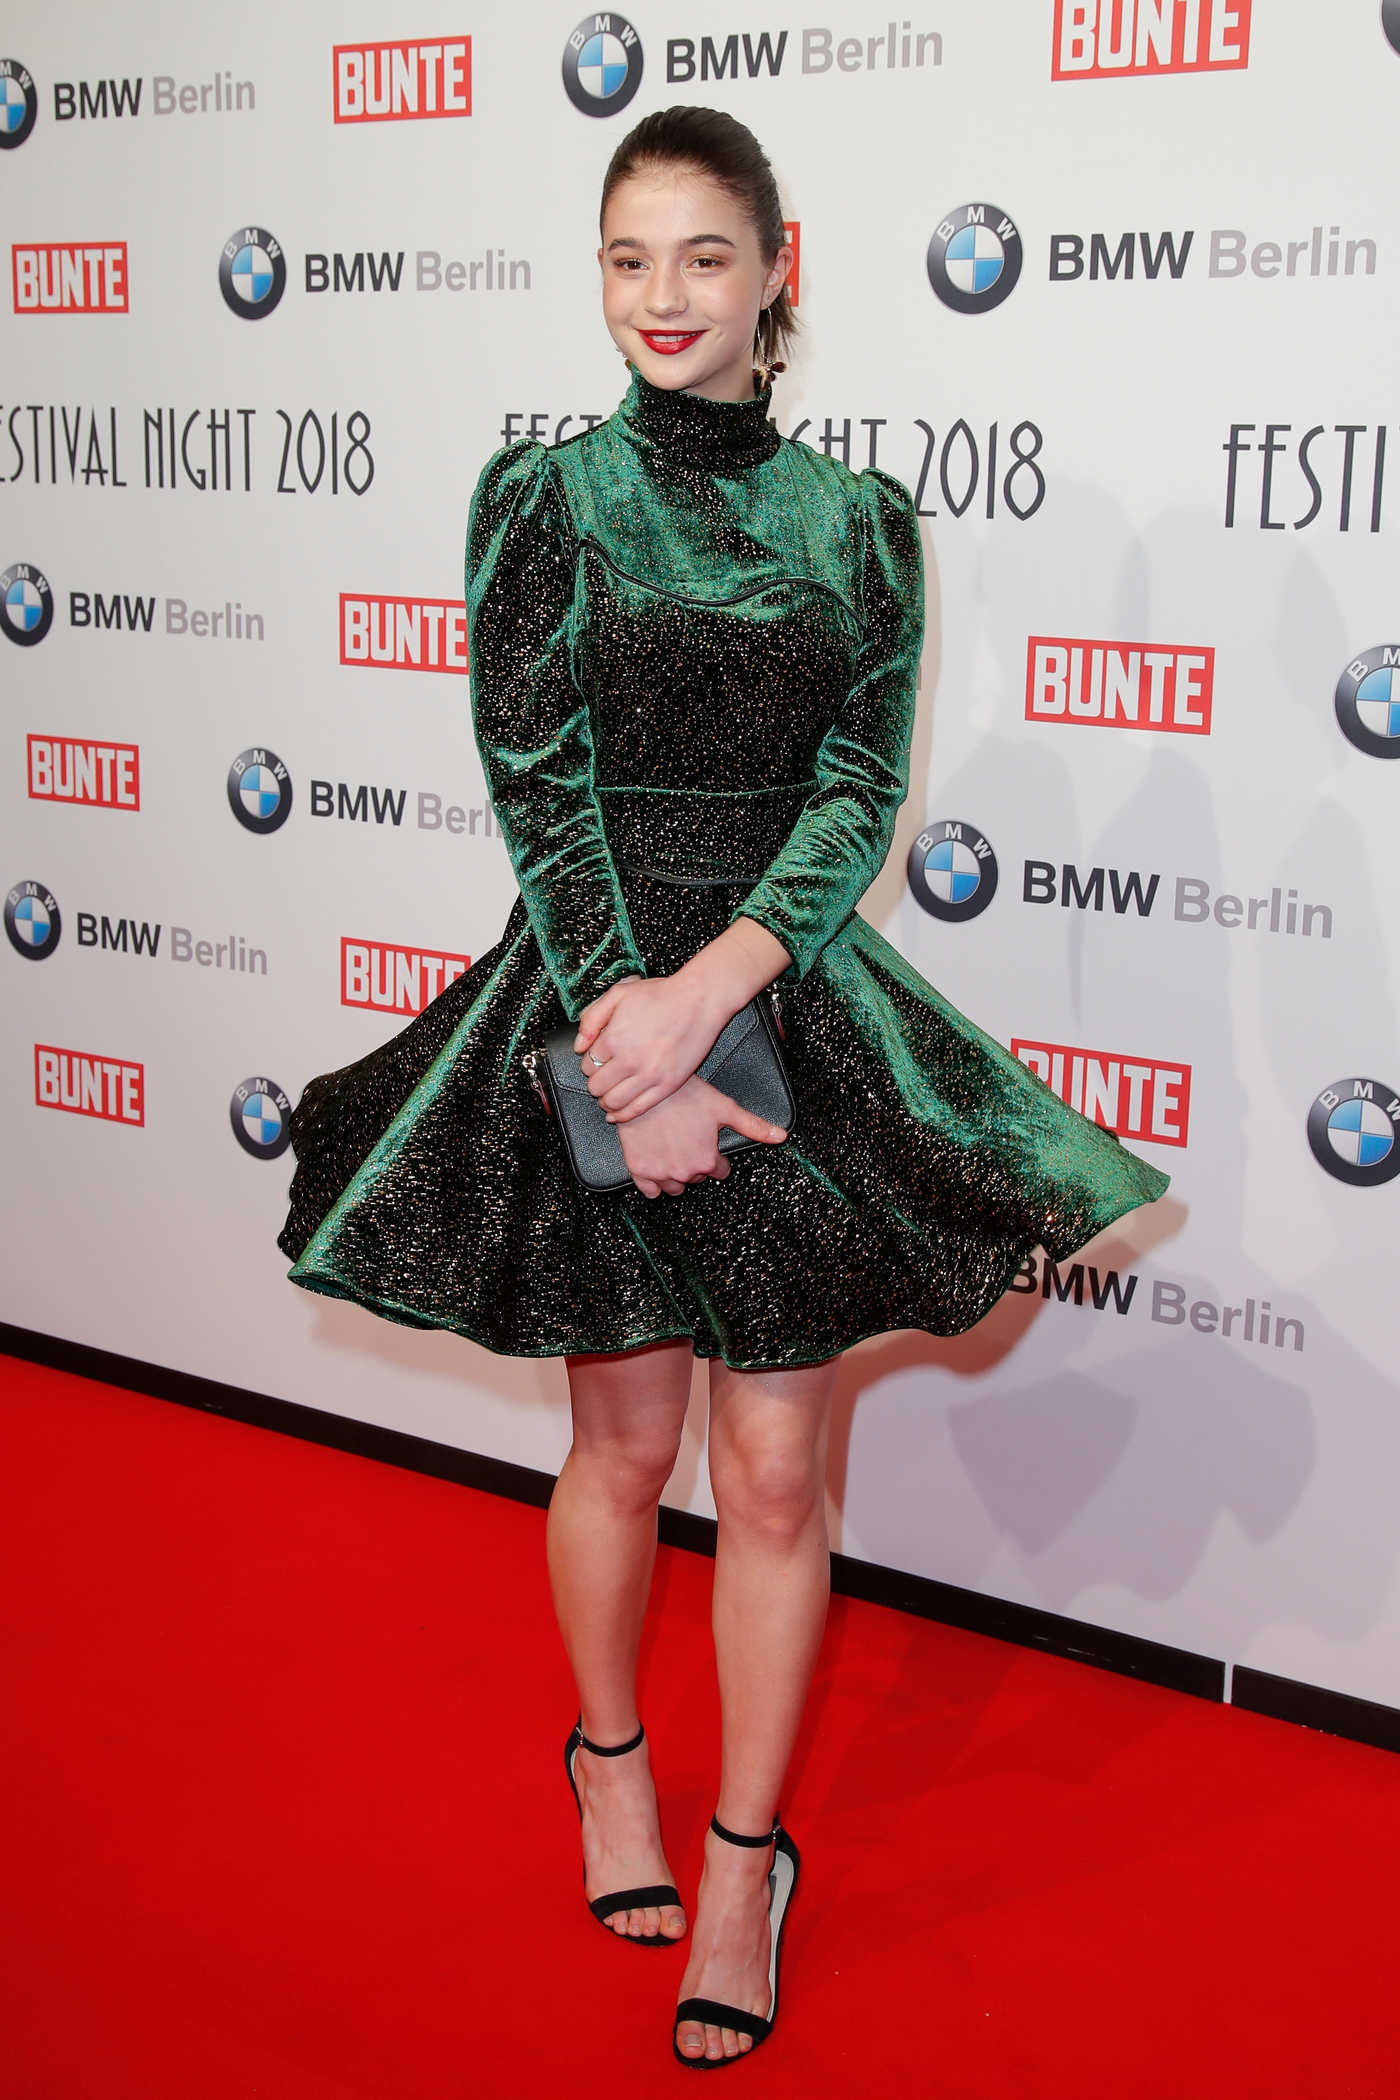 Lisa-Marie Koroll at the BMW Festival Night at the Berlinale in Berlin 02/16/2018